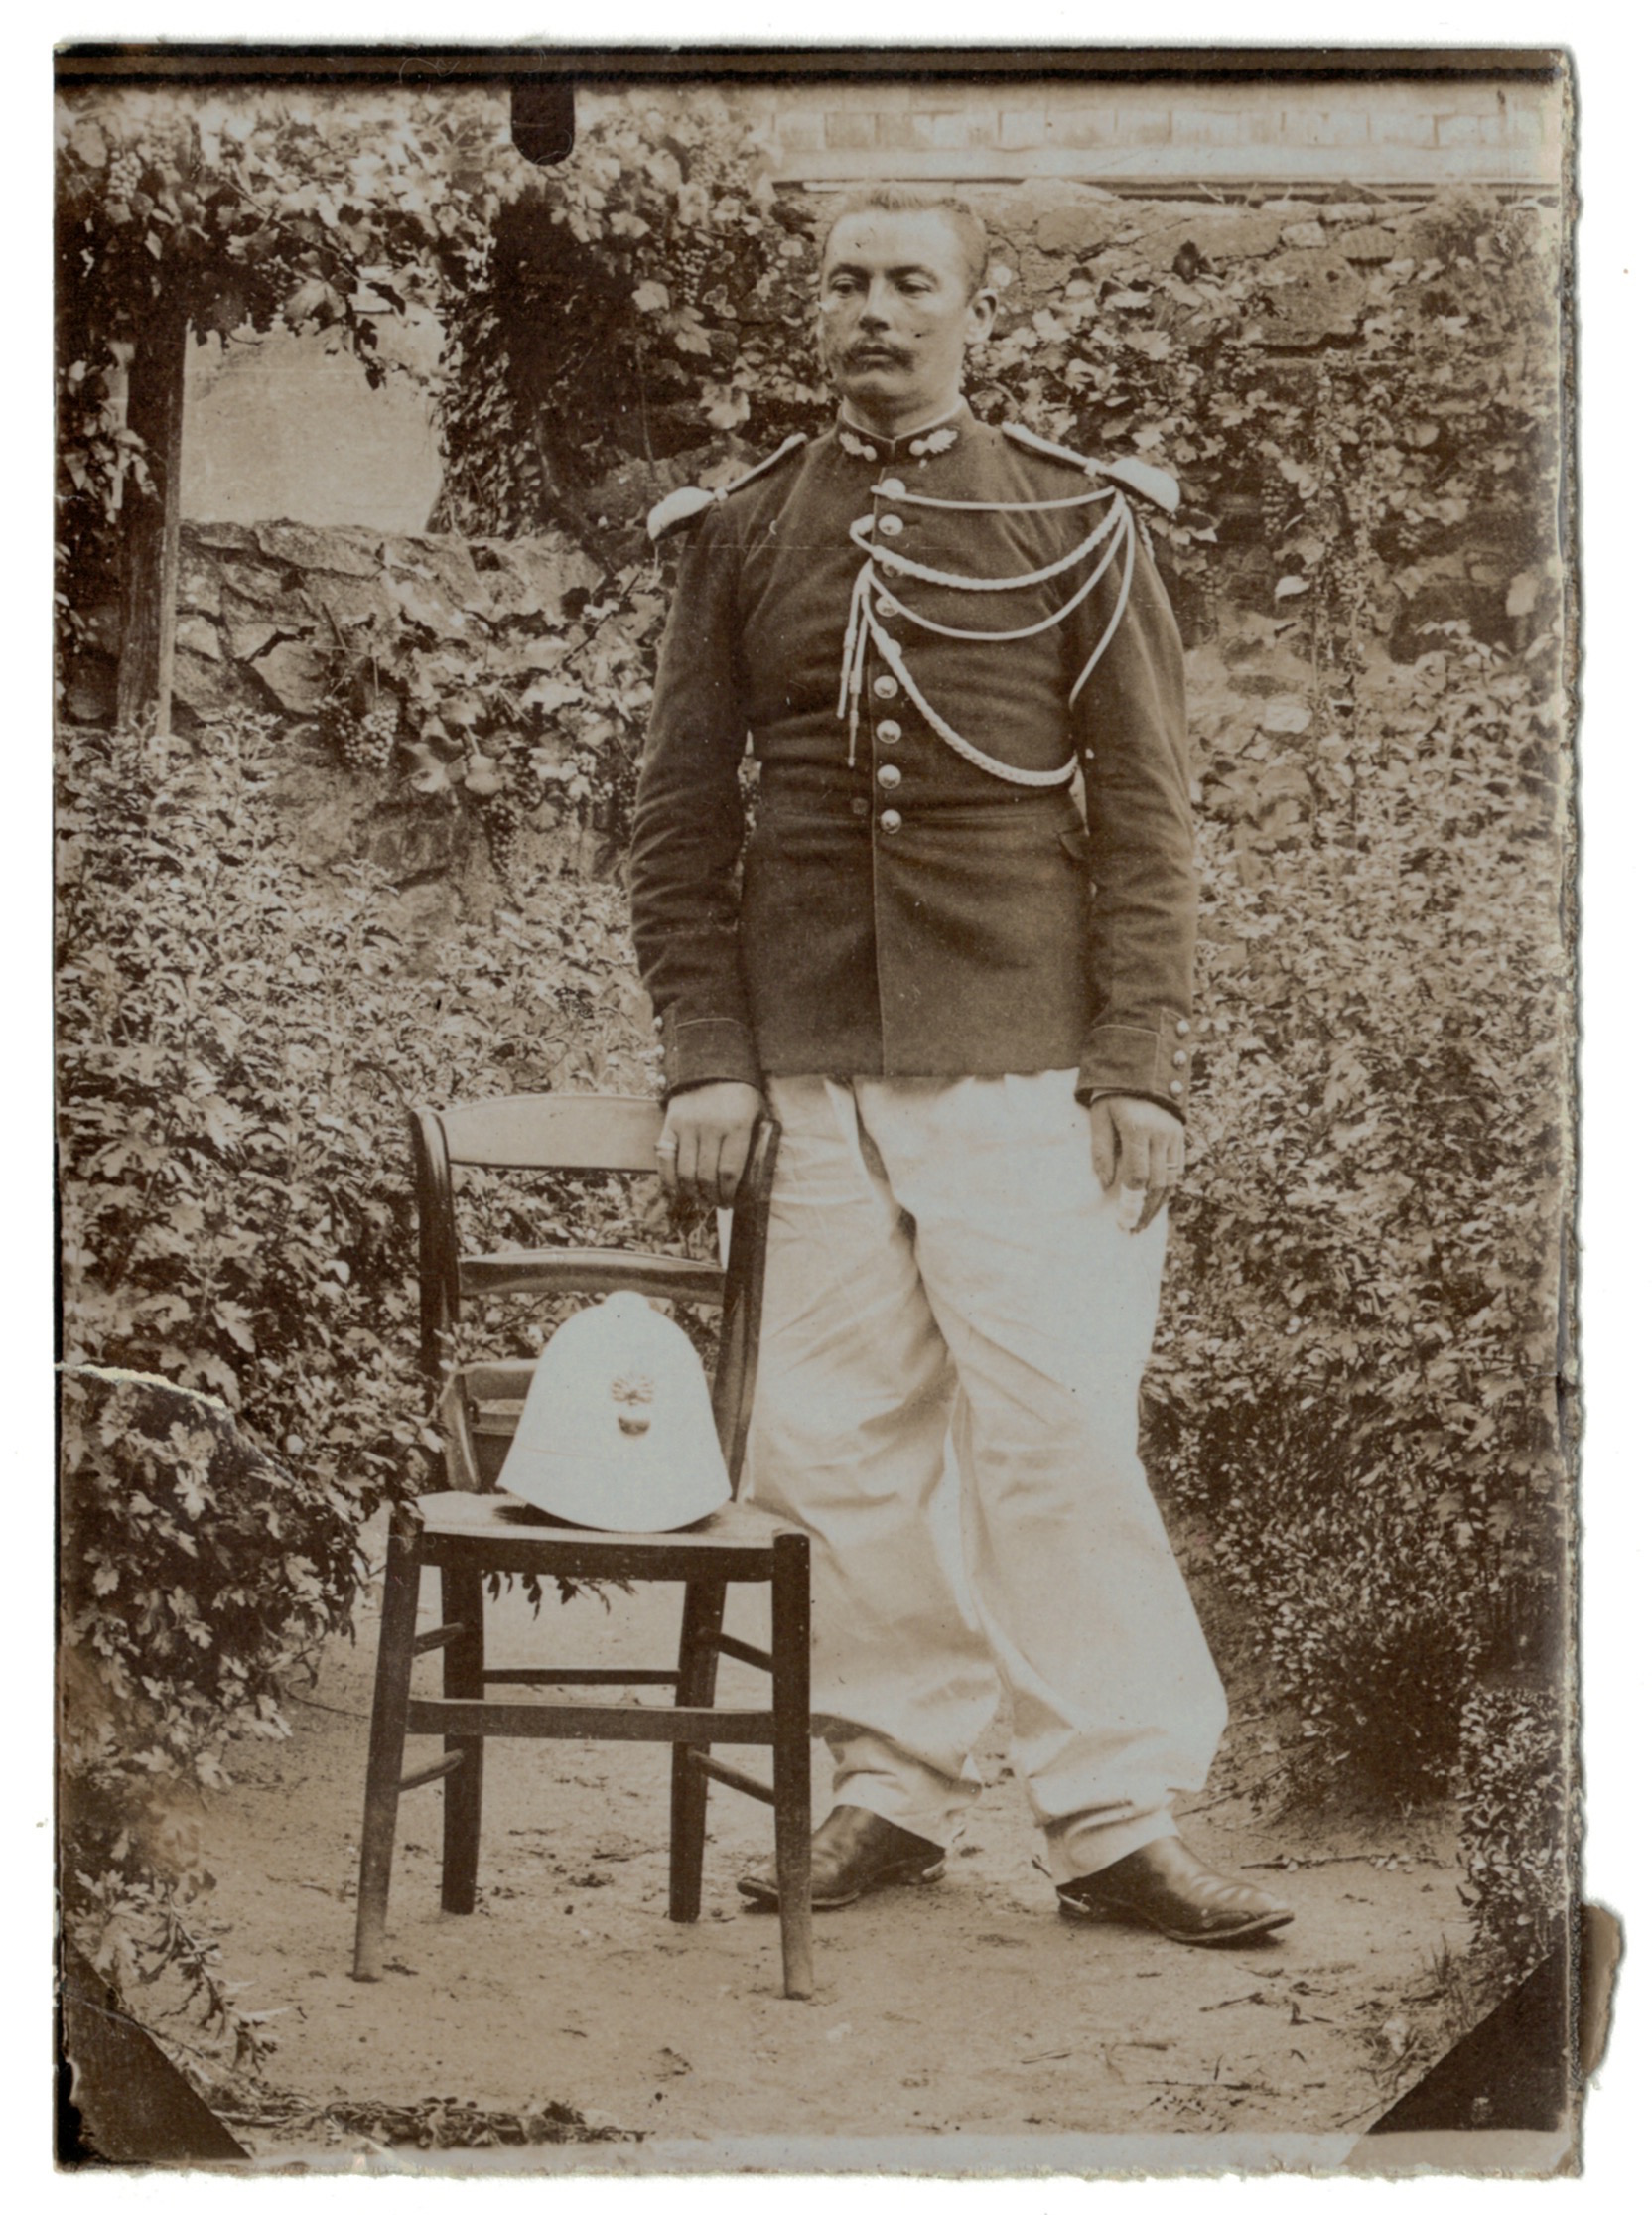 Photo papier originale - Gendarmerie - Orient - Coloniale - Fourragère - 1898 / 1900